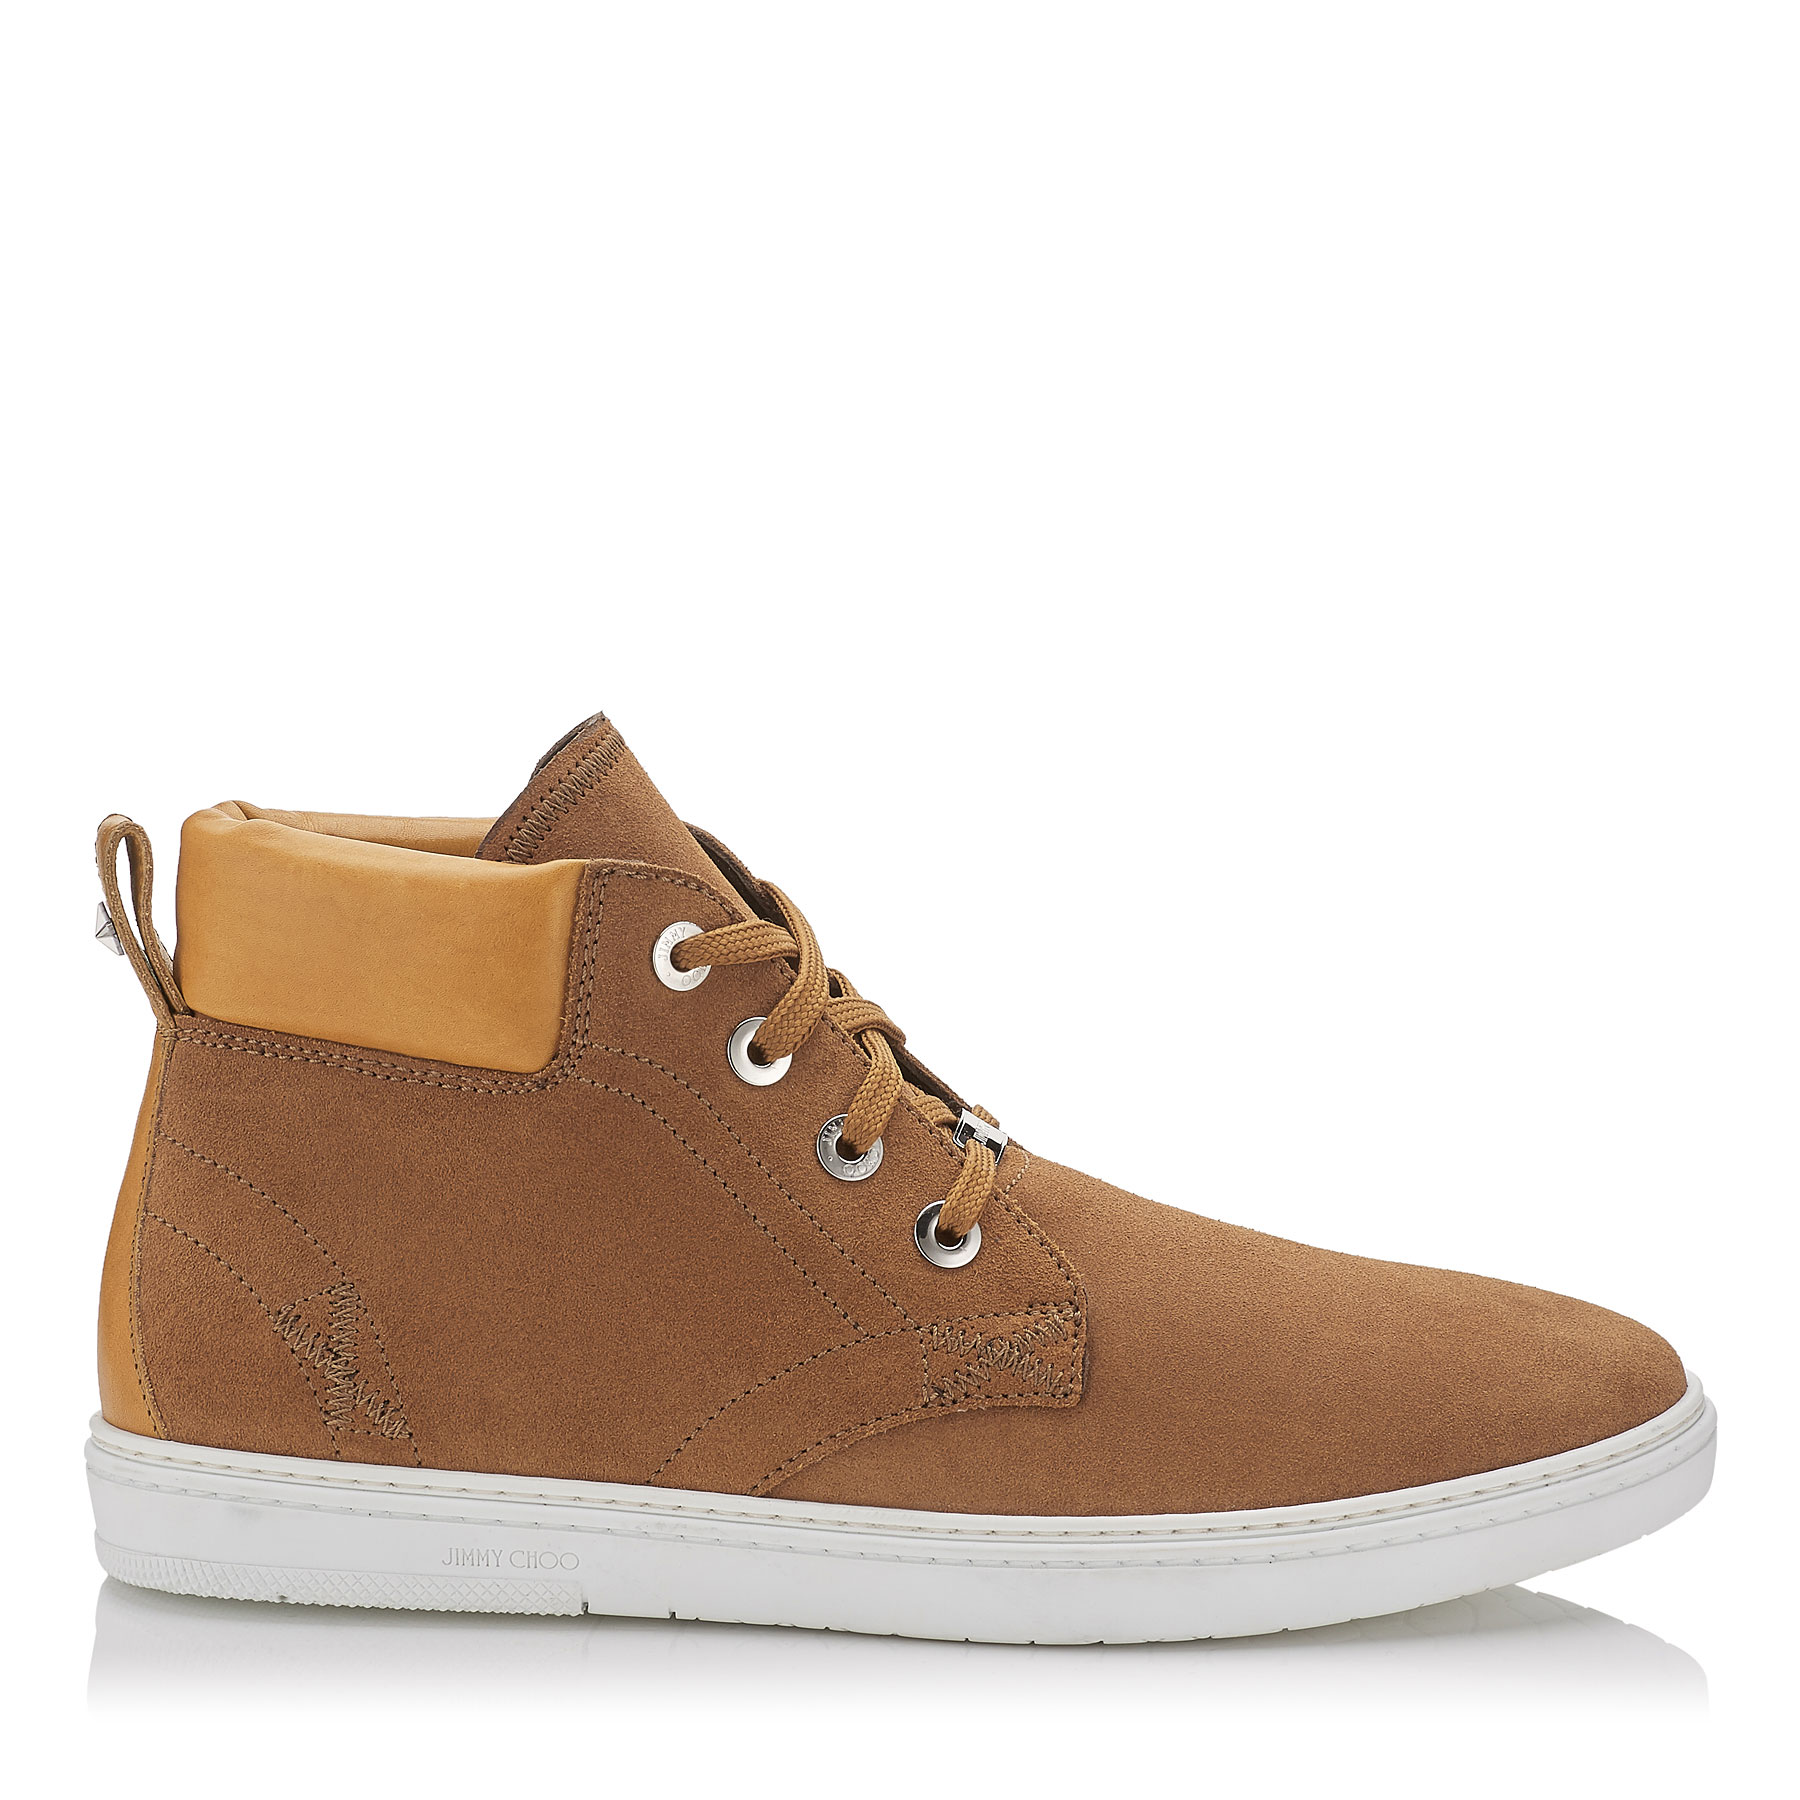 SMITH Nut Dry Suede Casual Boots